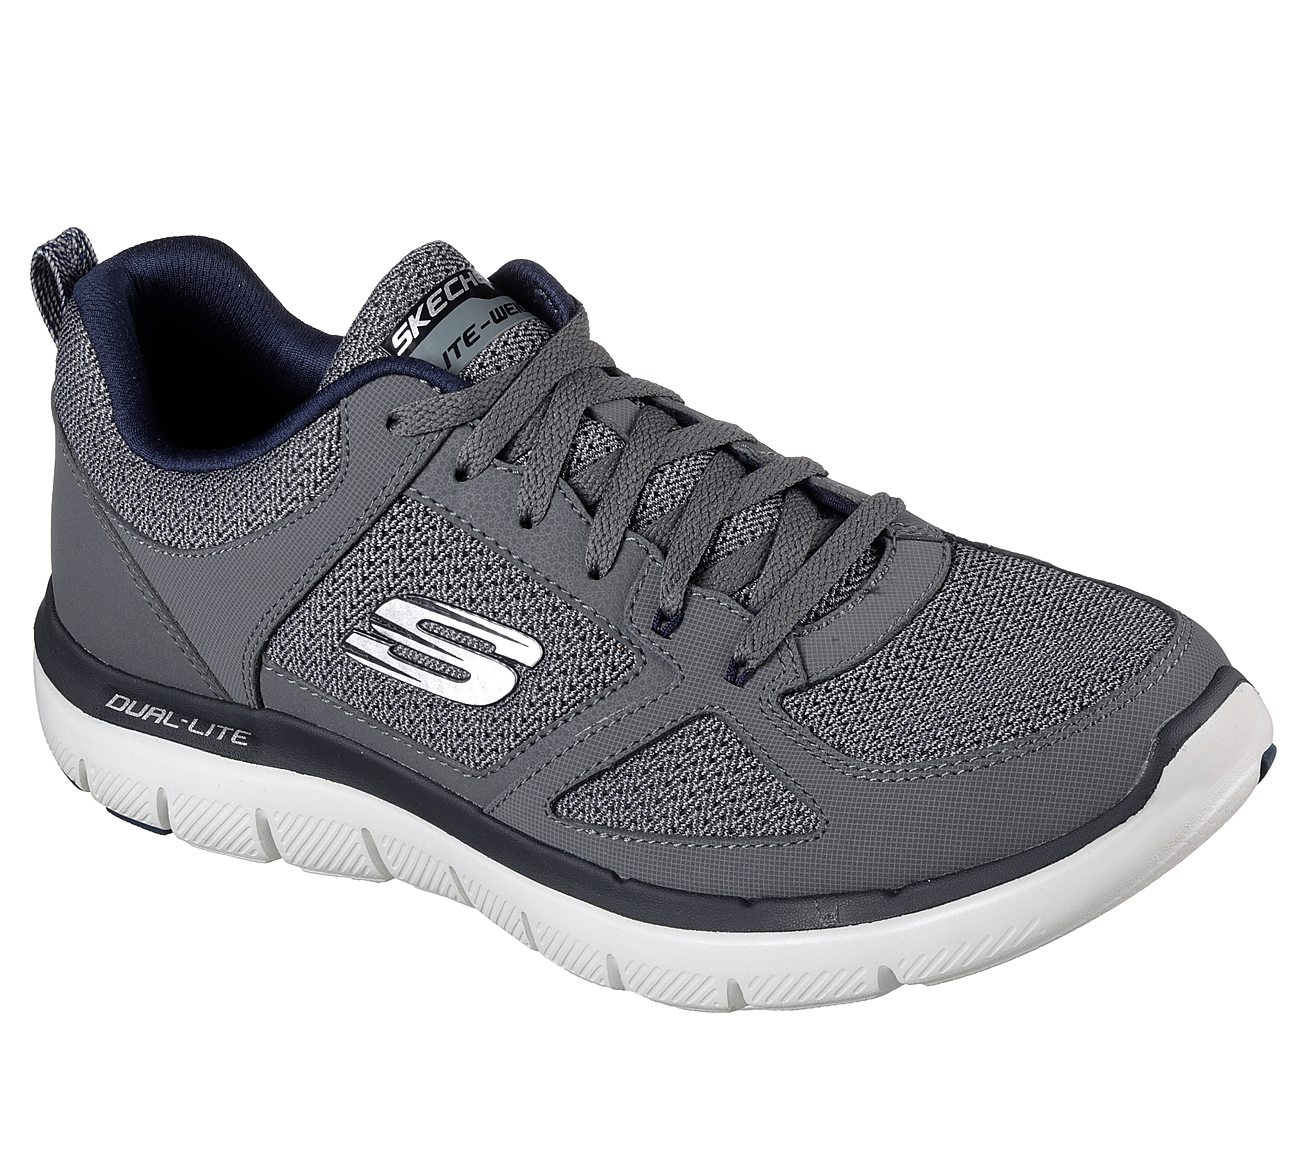 59bb9ca793 Exclusive SKECHERS Homens shoes - SKECHERS Brasil